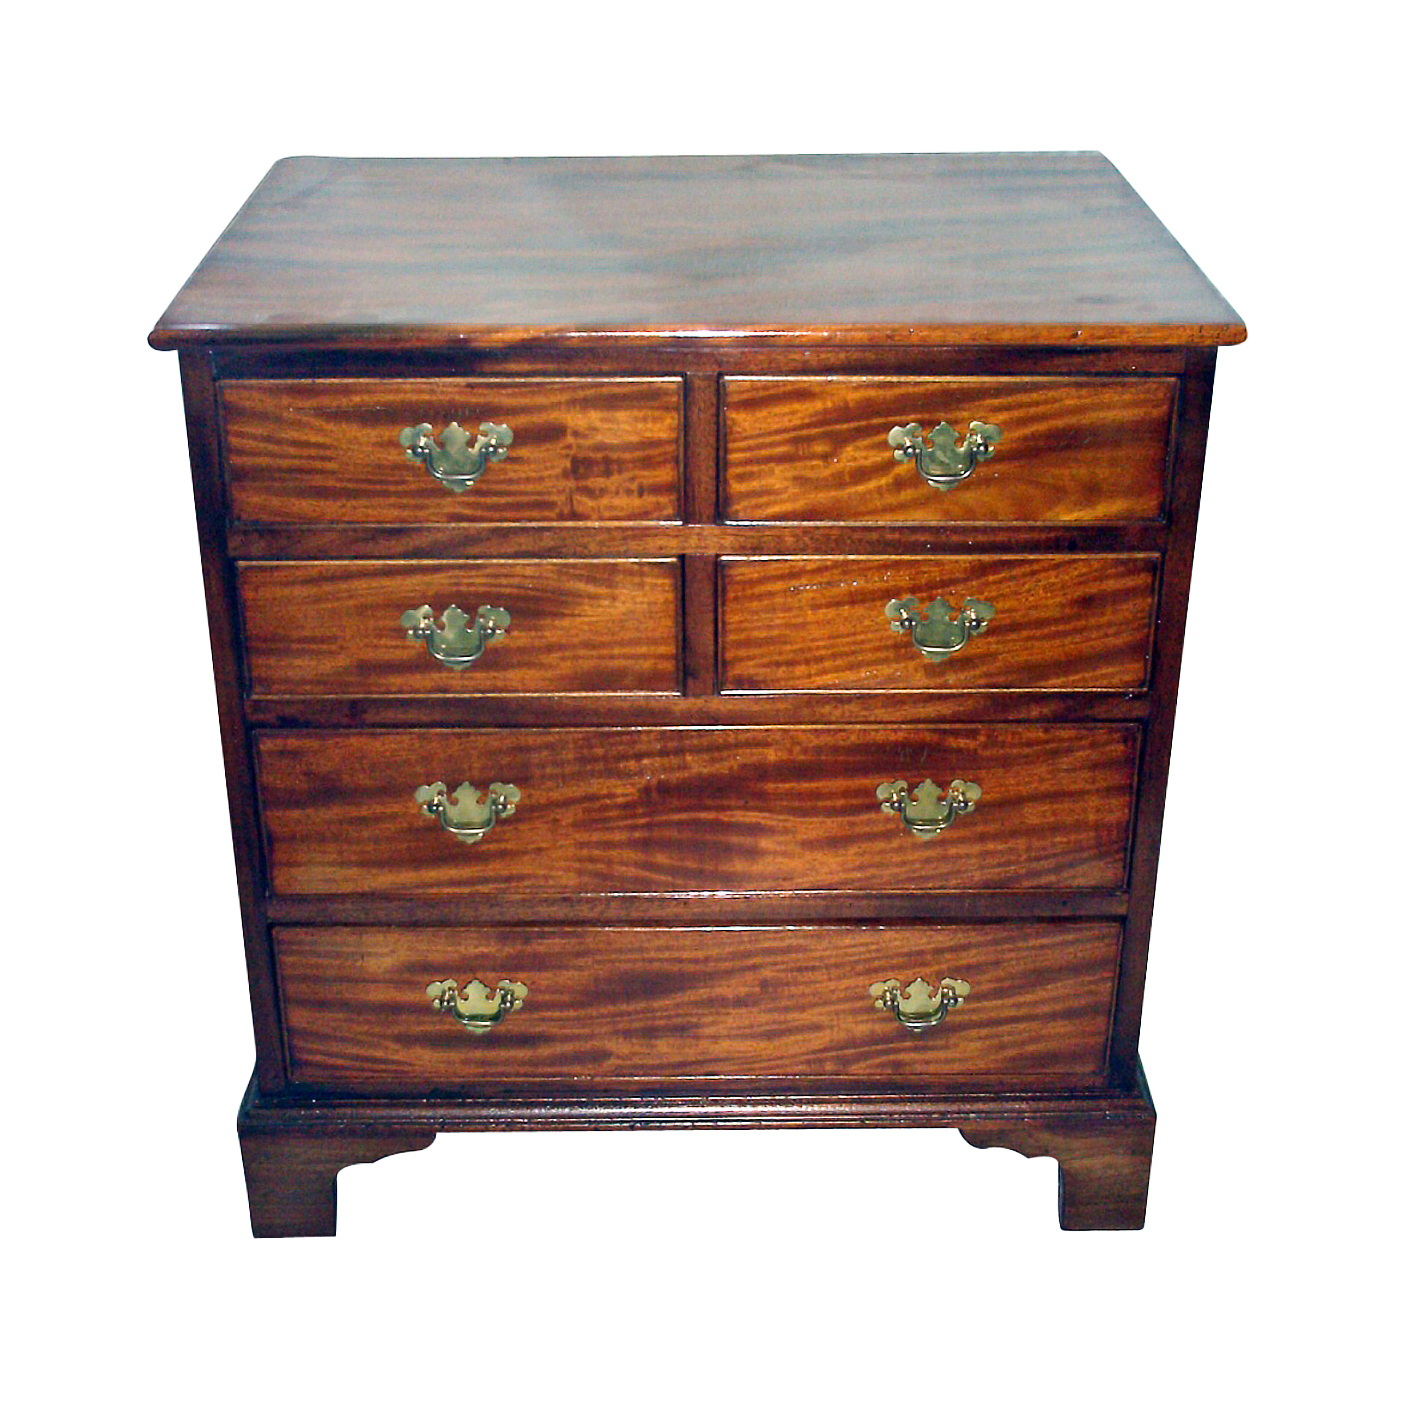 This diminutive Georgian style chest of drawers was probably scaled down from a larger antique case piece. It has appropriate but modern hardware and is French polished and retail ready. It has a one board top of beautiful plum pudding mahogany and would make a perfect side table or bedside stand.